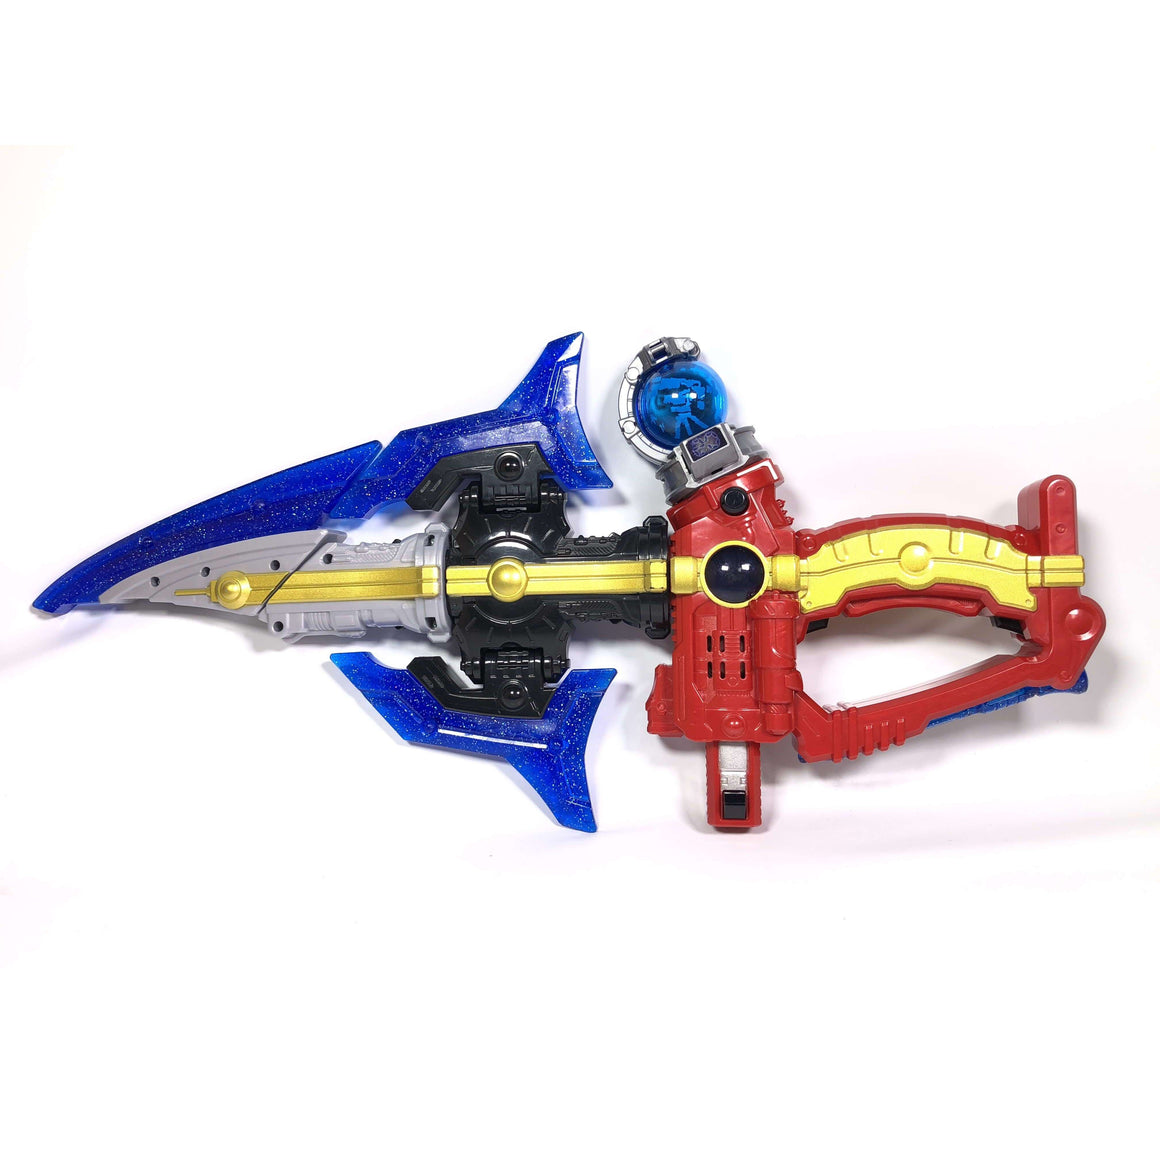 CSTOYS INTERNATIONAL:[LOOSE] Uchu Sentai Kyuranger: DX Kyu The Weapon